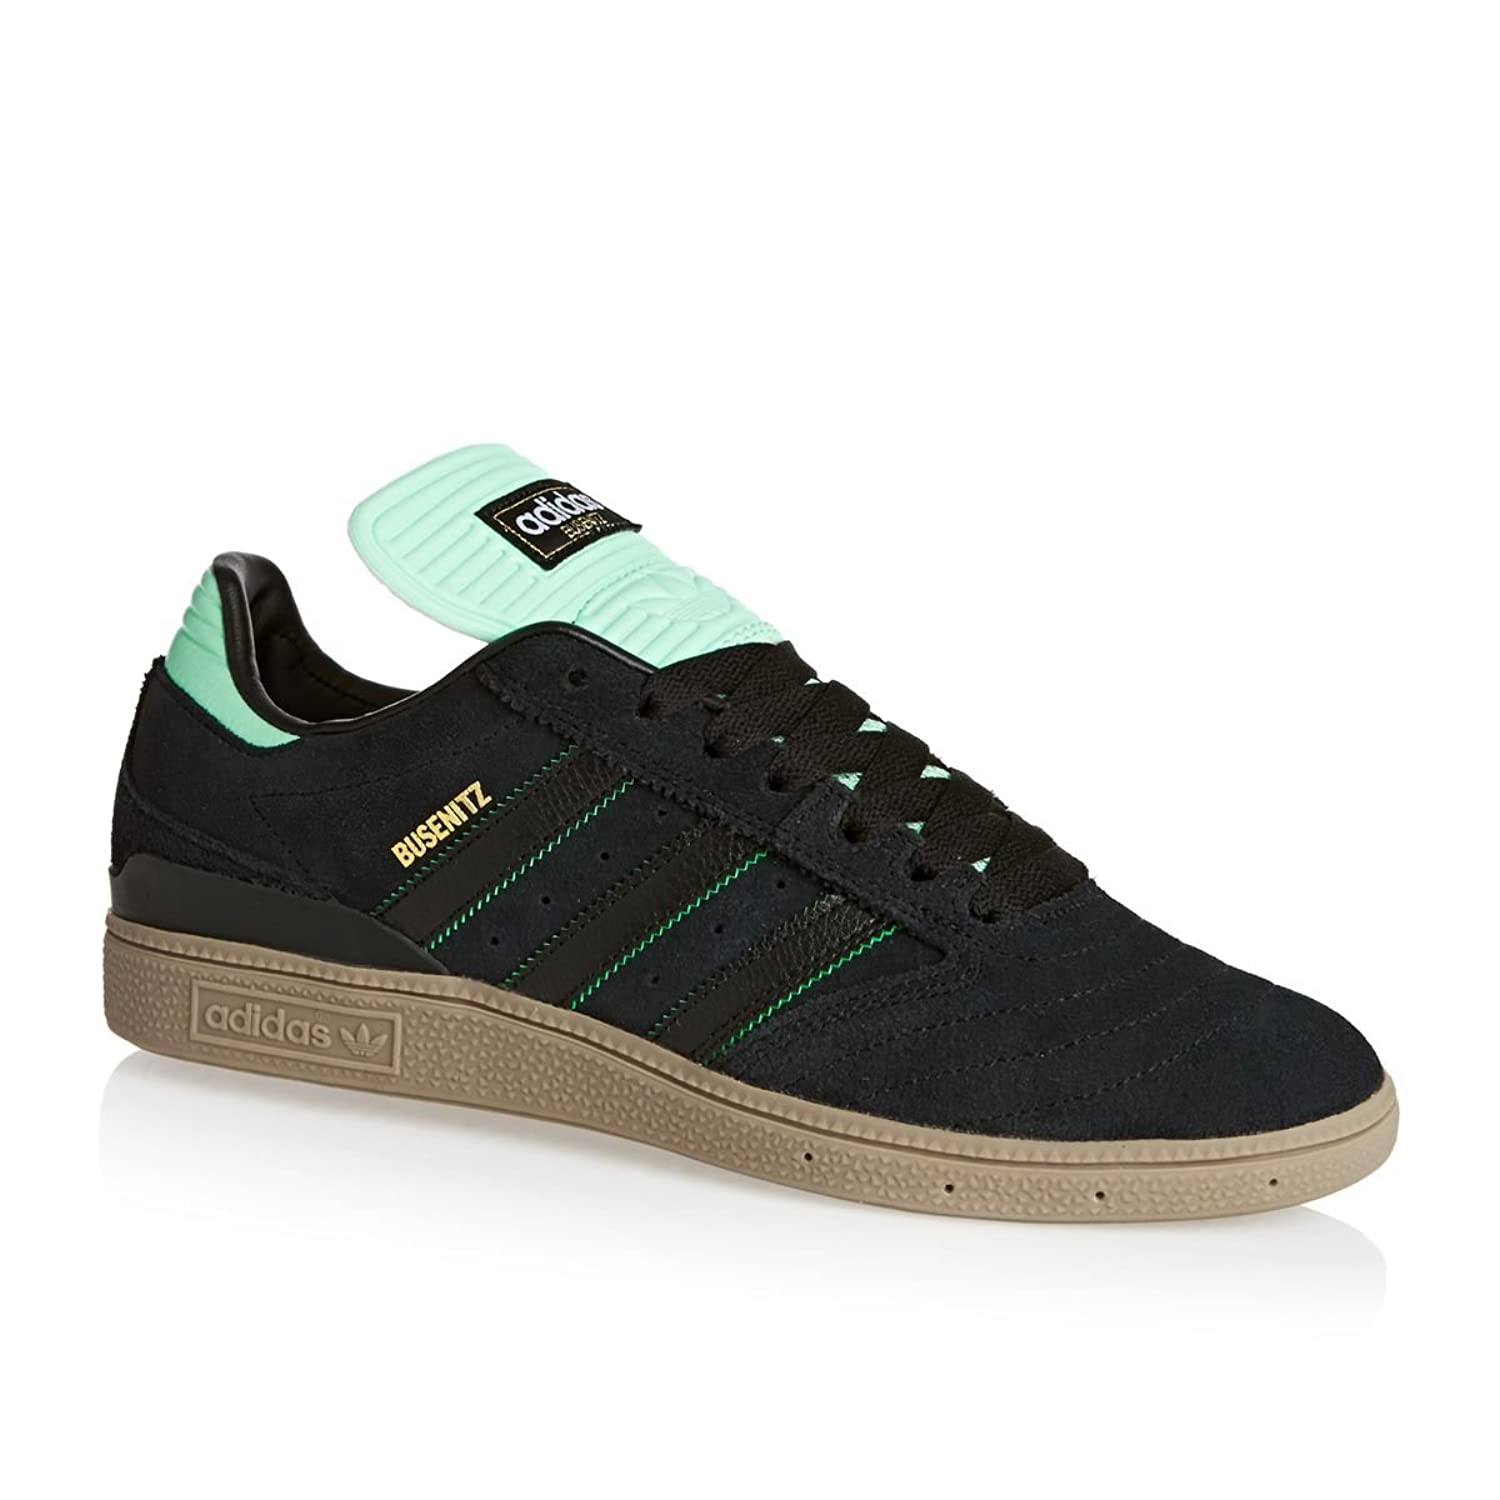 699a0ca3a1c ... Adidas Busenitz Core BlackIce GreenGum 7.5 M US Men Amazon.ca Shoes  Handbags ...